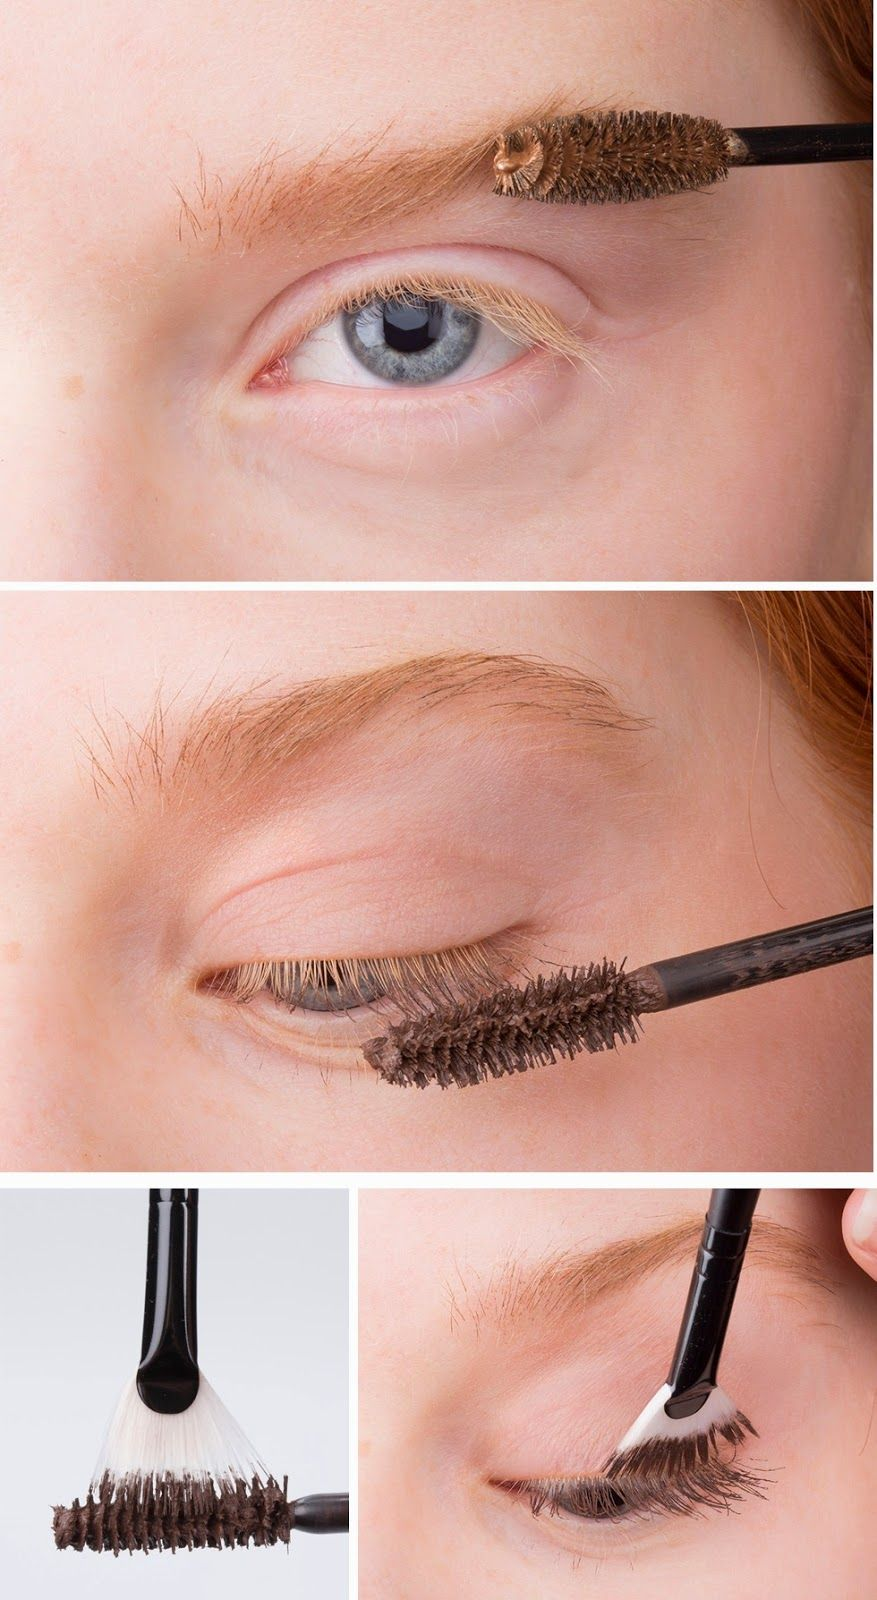 Redheads How To Do Your Brows And Mascara Best Lolus Makeup